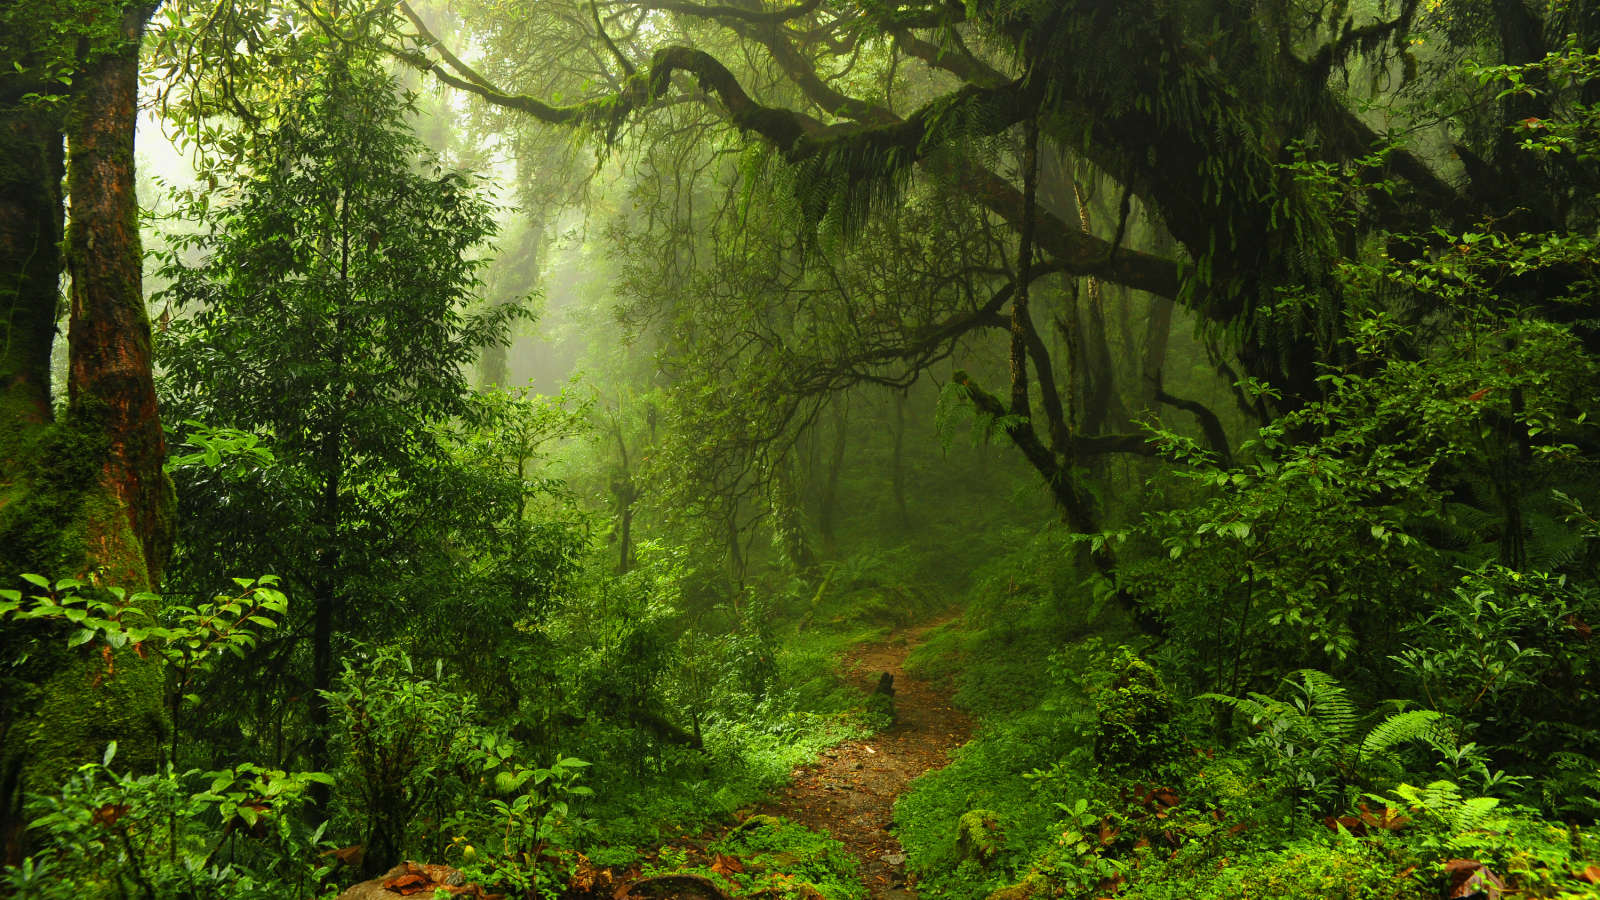 Listen to Forests From Around the World With Tree.fm